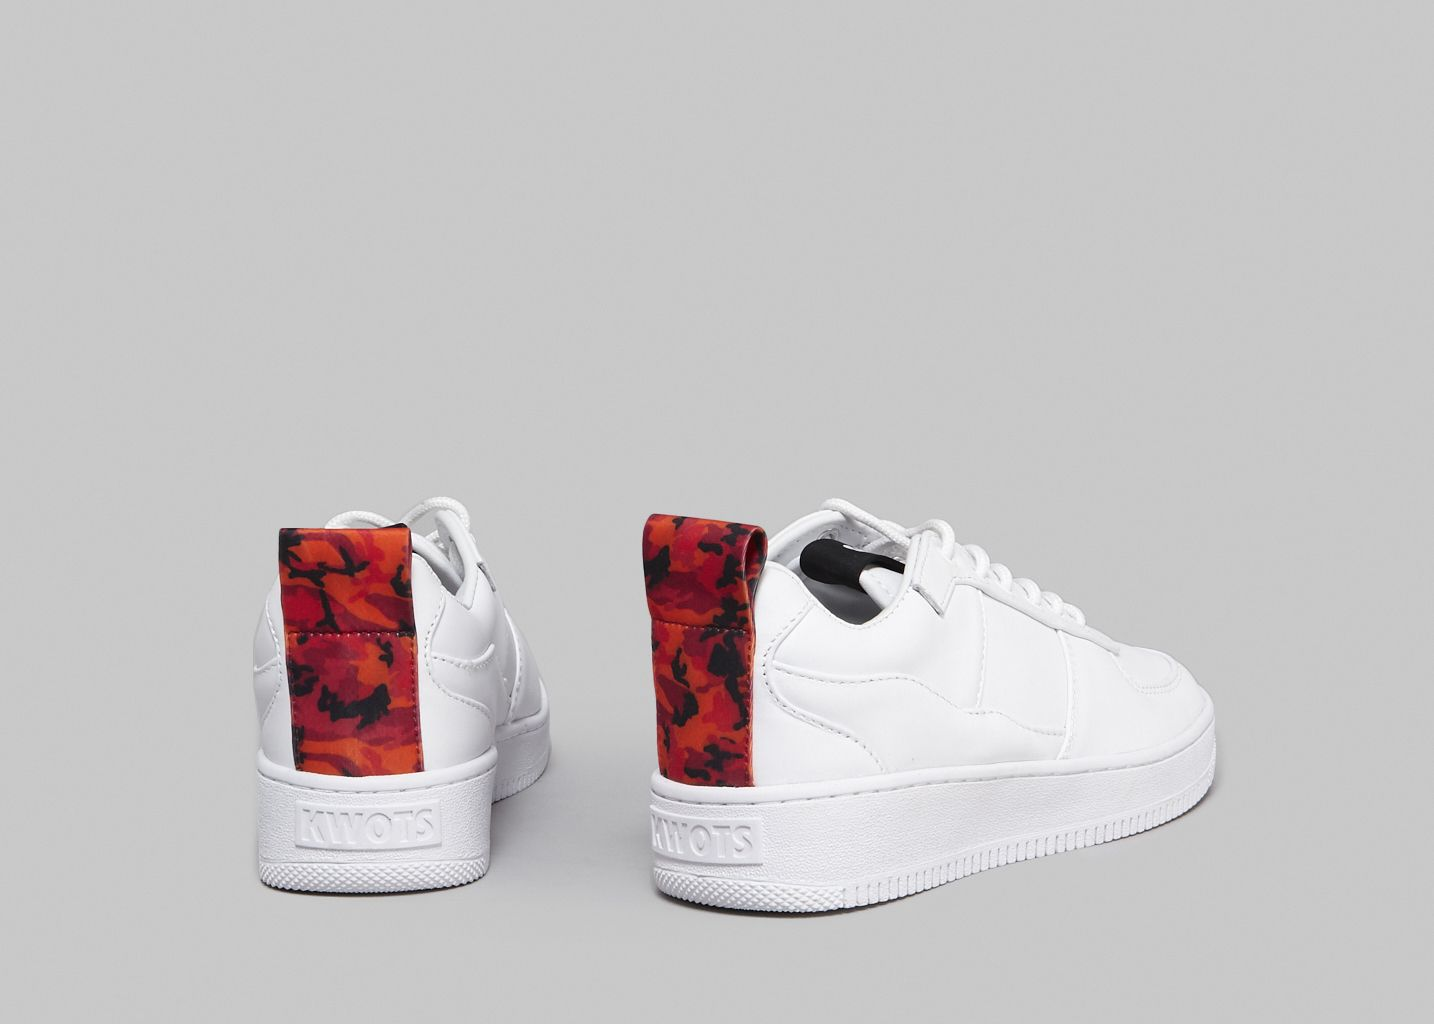 Sneakers Master Camo - Kwots